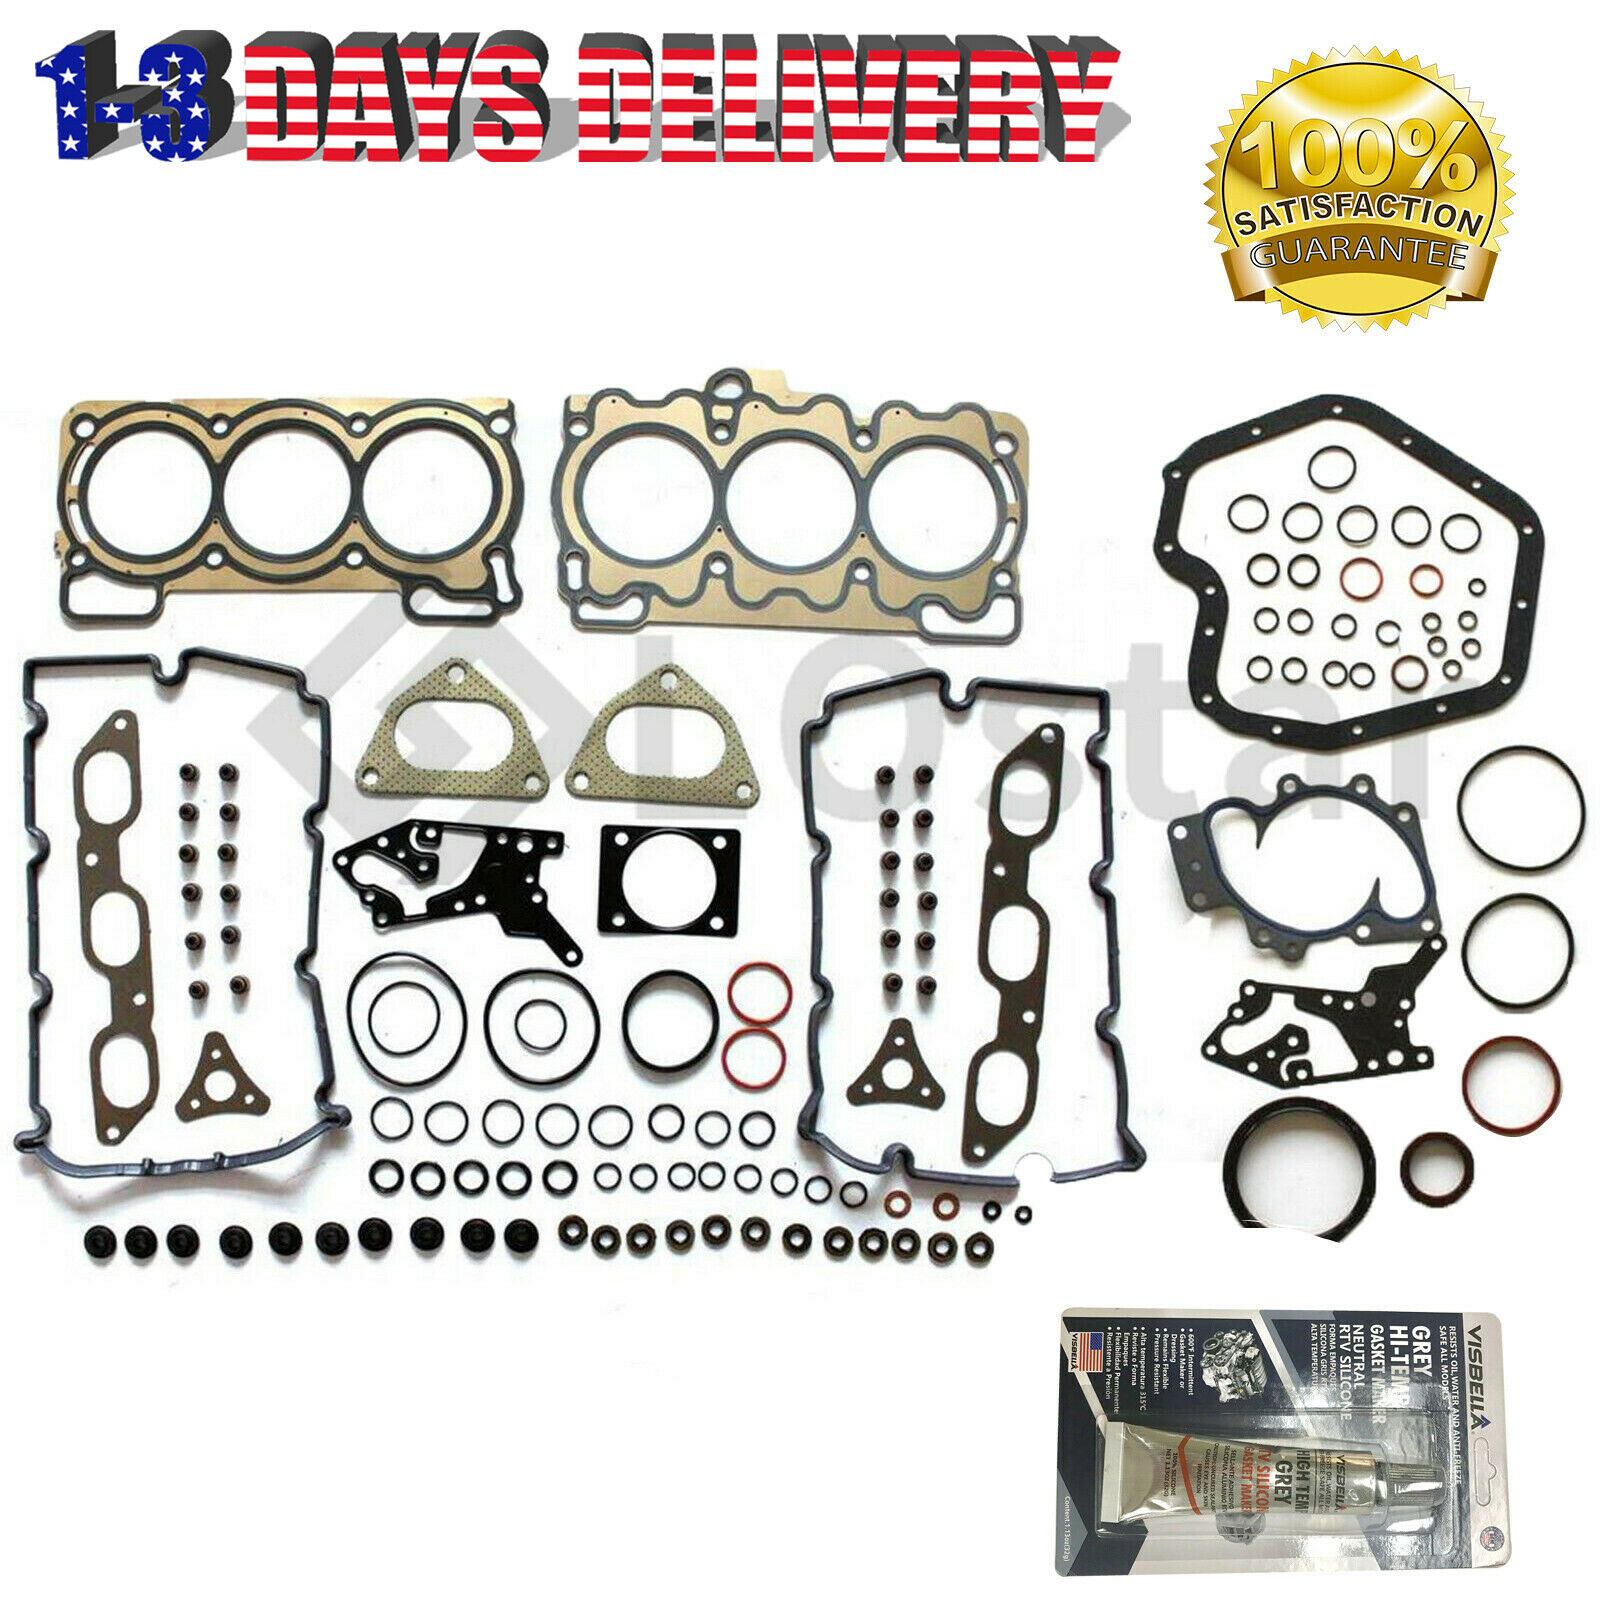 Cylinder Head Gasket Set Fits 01 04 Subaru Outback 30l H6 12999 1998 1 Of 7only Available